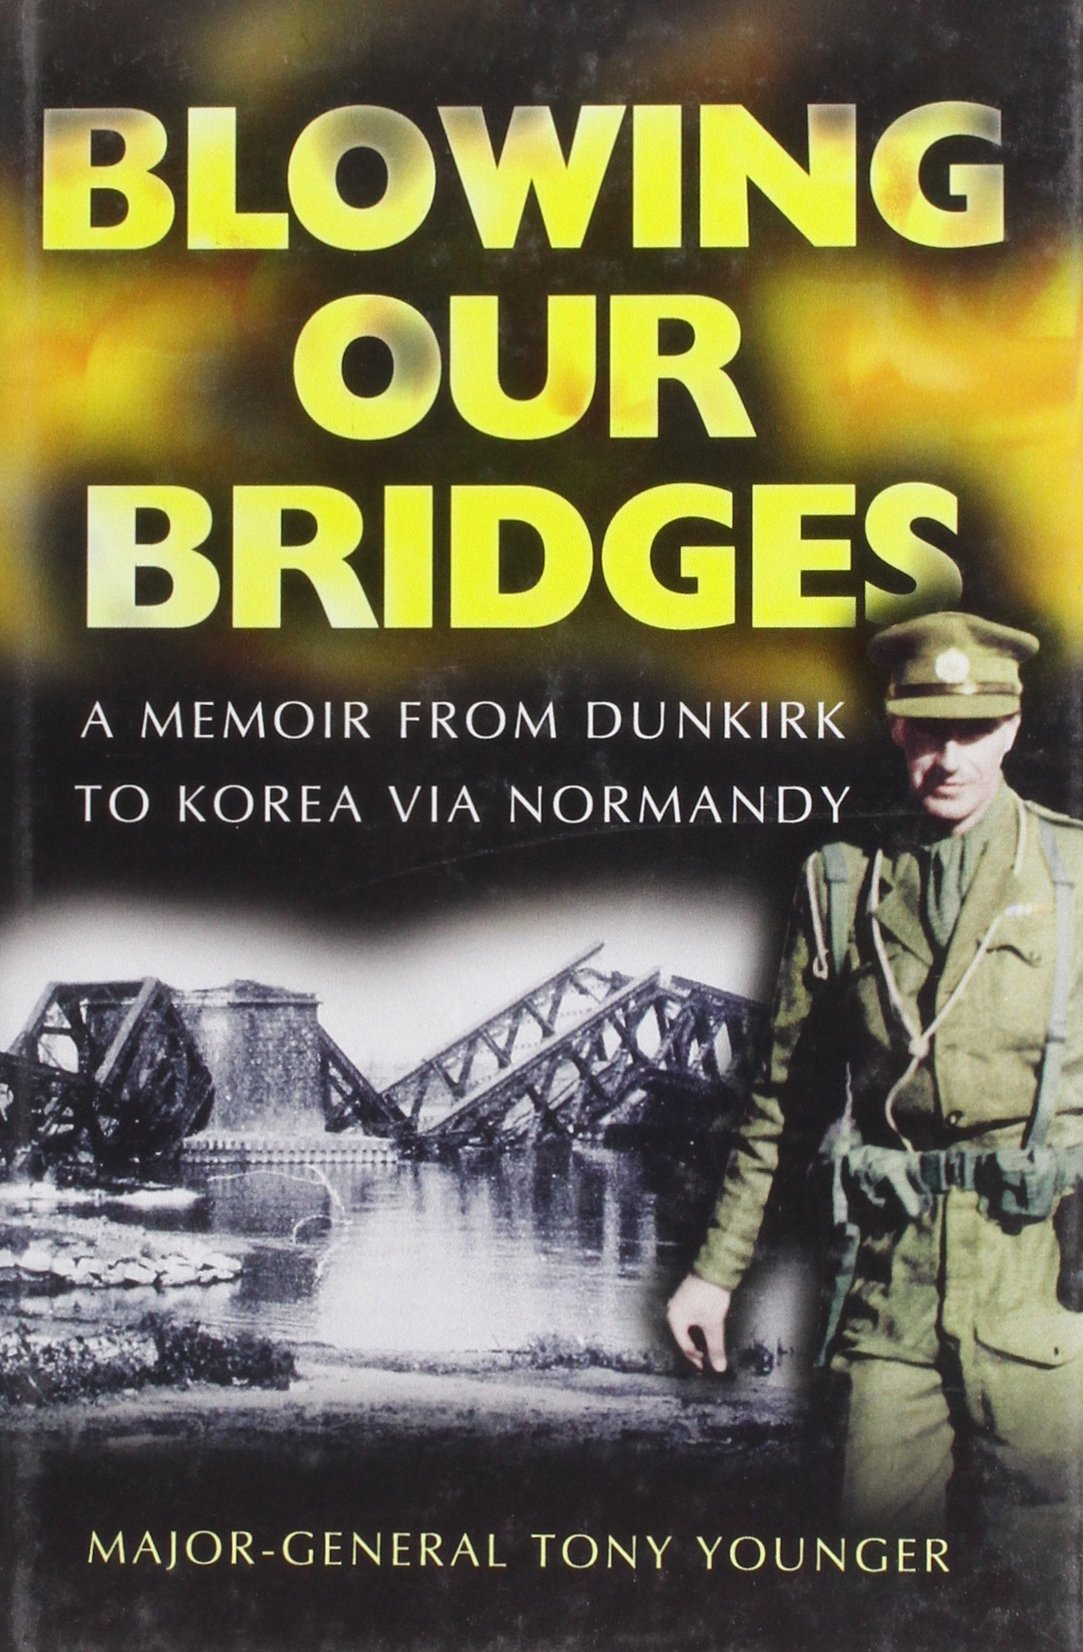 Blowing our Bridges: A Memoir From Dunkirk to Korea via Normandy